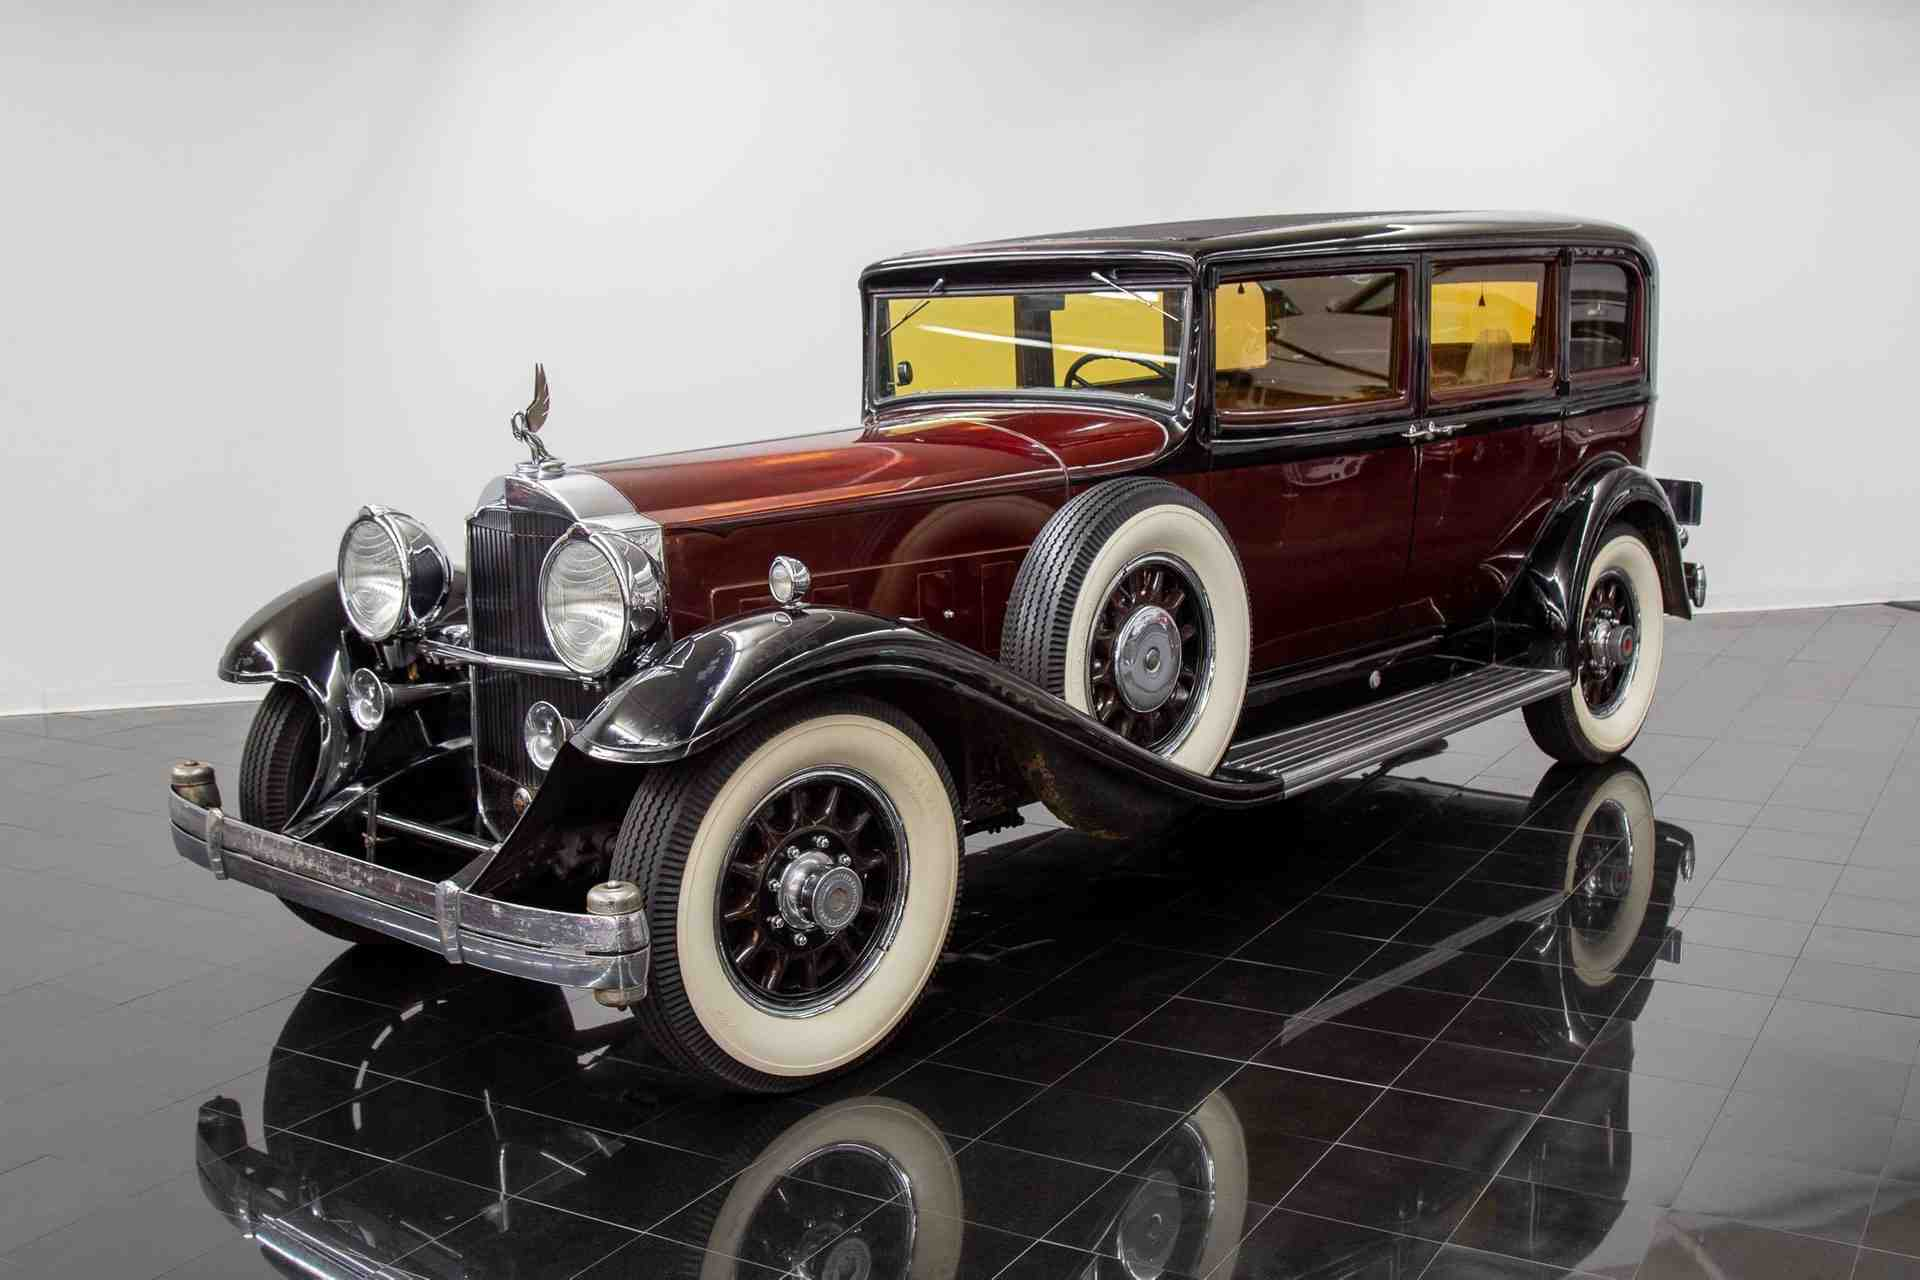 1932 Packard 903 Deluxe Eight 2/4 Coupe Roadster for sale